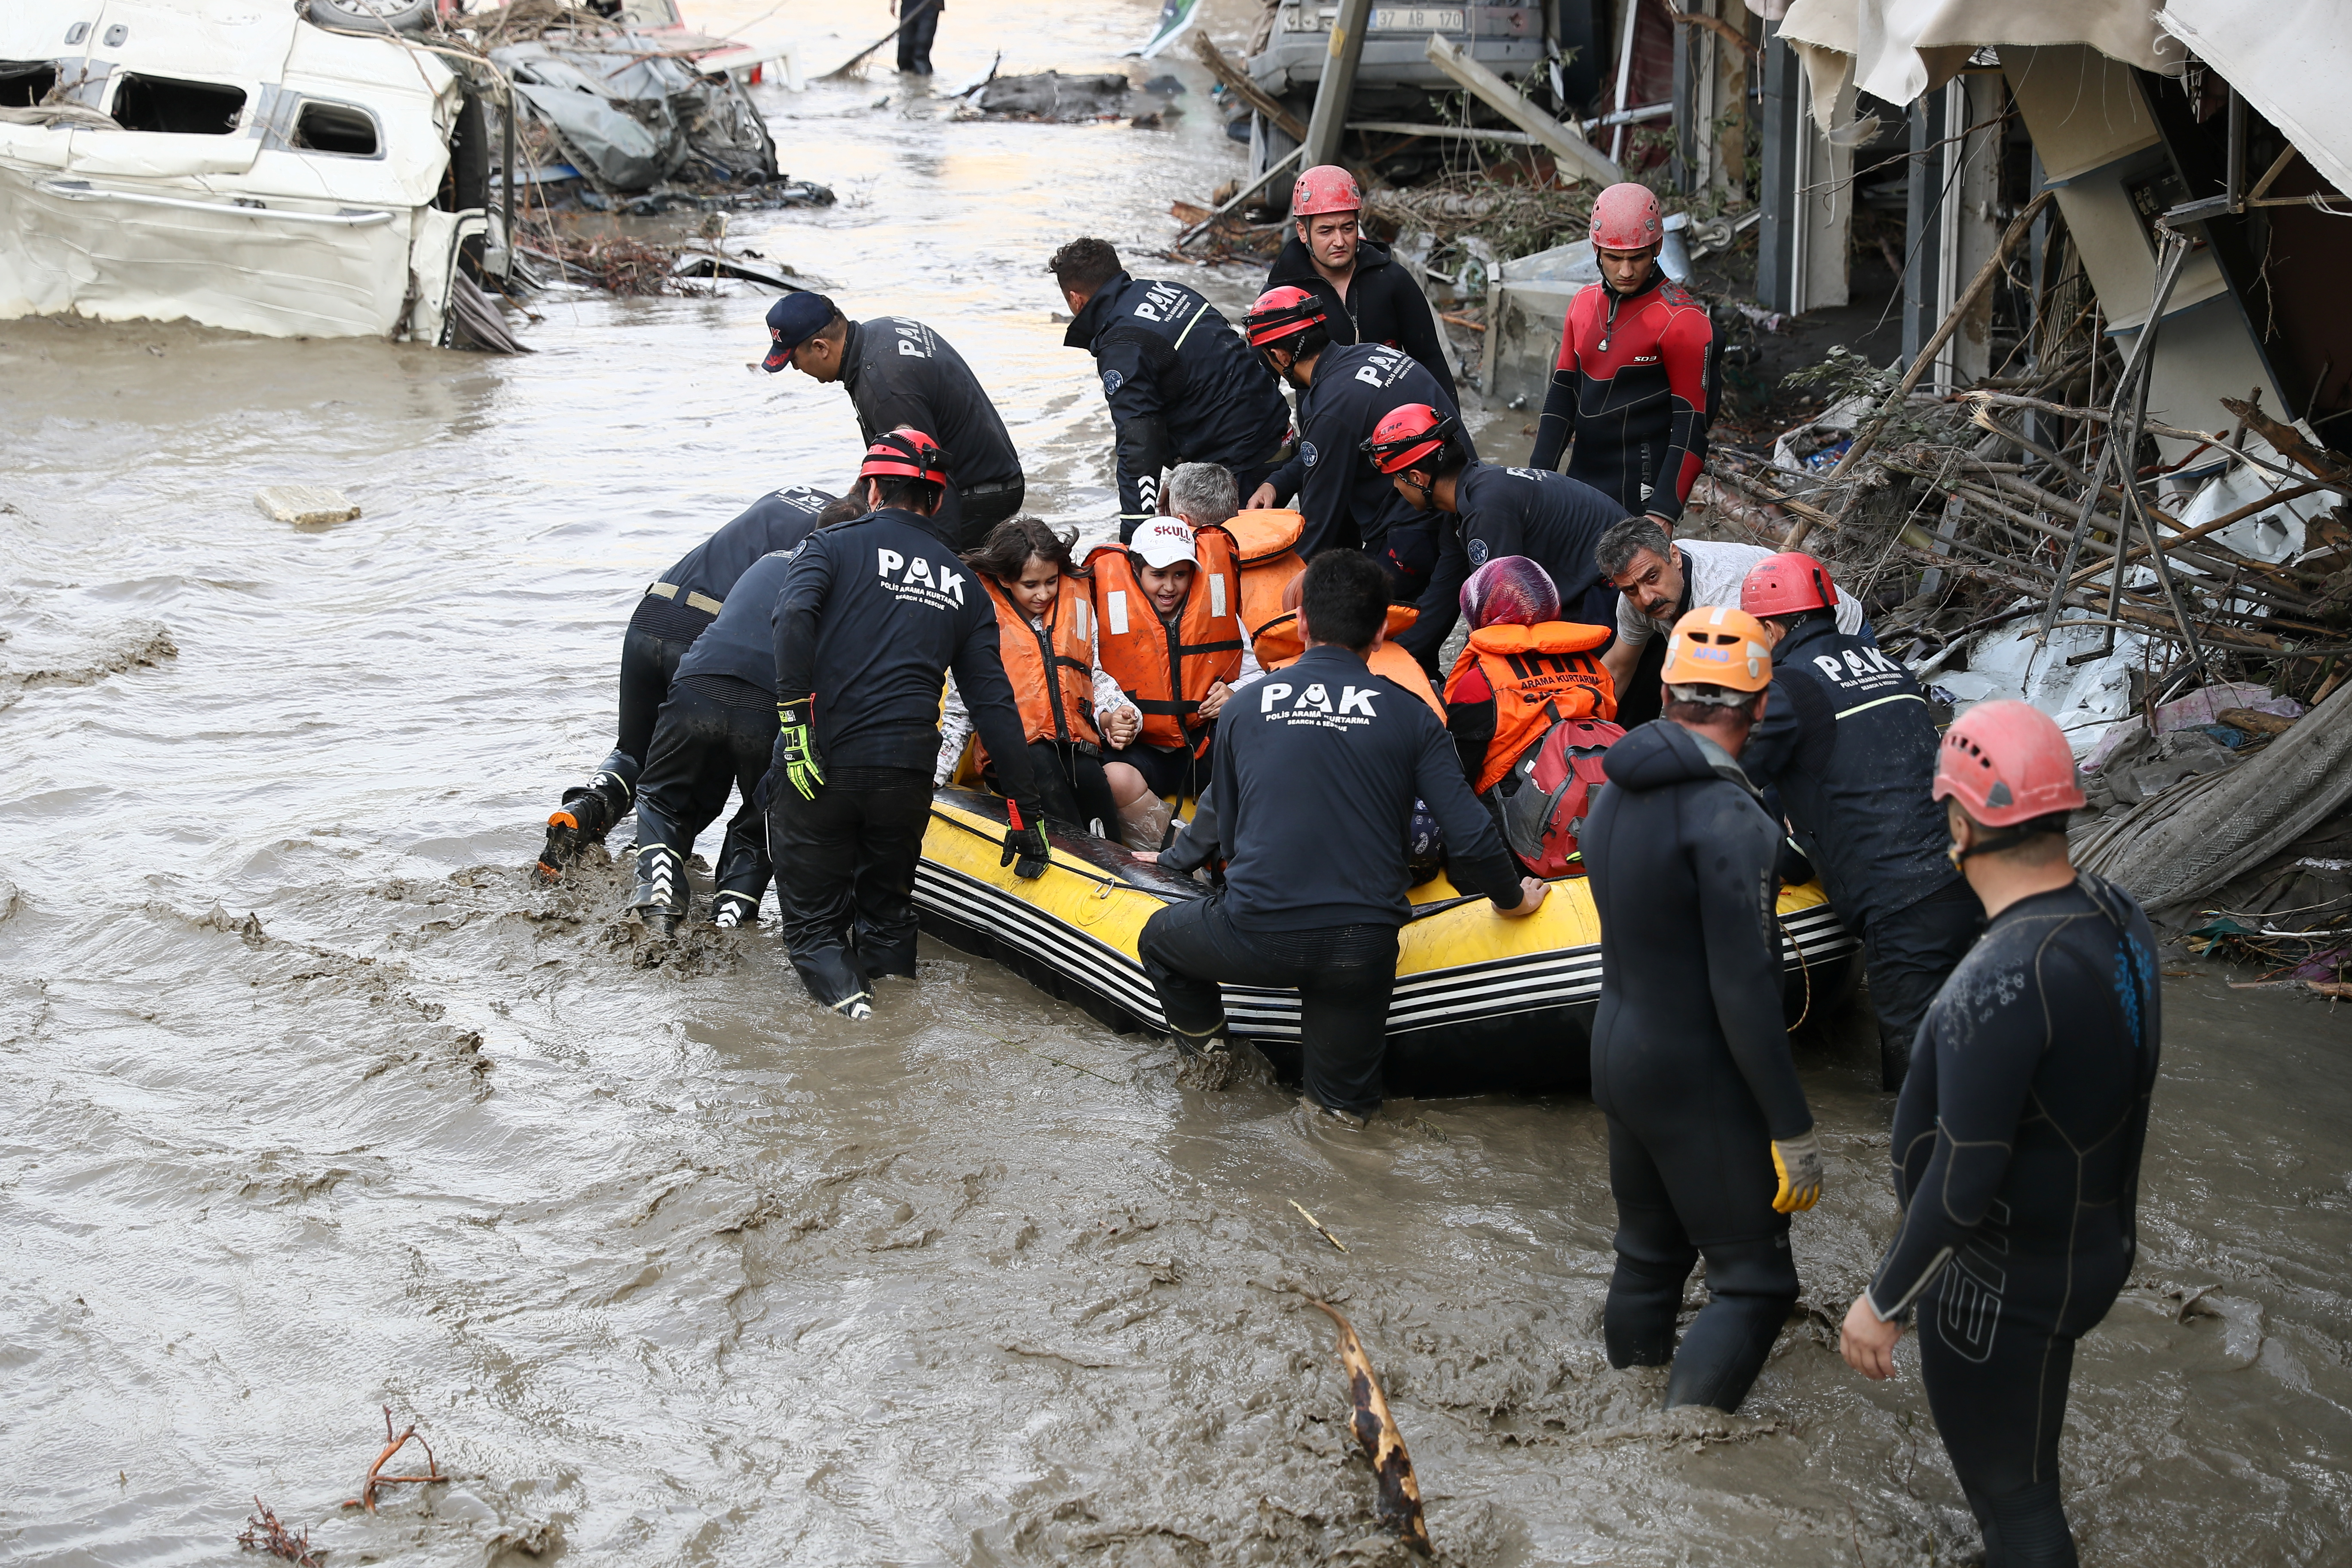 Search and Rescue team members evacuate locals during flash floods which have swept through towns in the Turkish Black Sea, in Bozkurt, a town in Kastamonu province, Turkey, August 12, 2021. Picture taken August 12, 2021. Onder Godez/Ministry of Interior Disaster and Emergency Management Authority (AFAD) Press Office/Handout via REUTERS